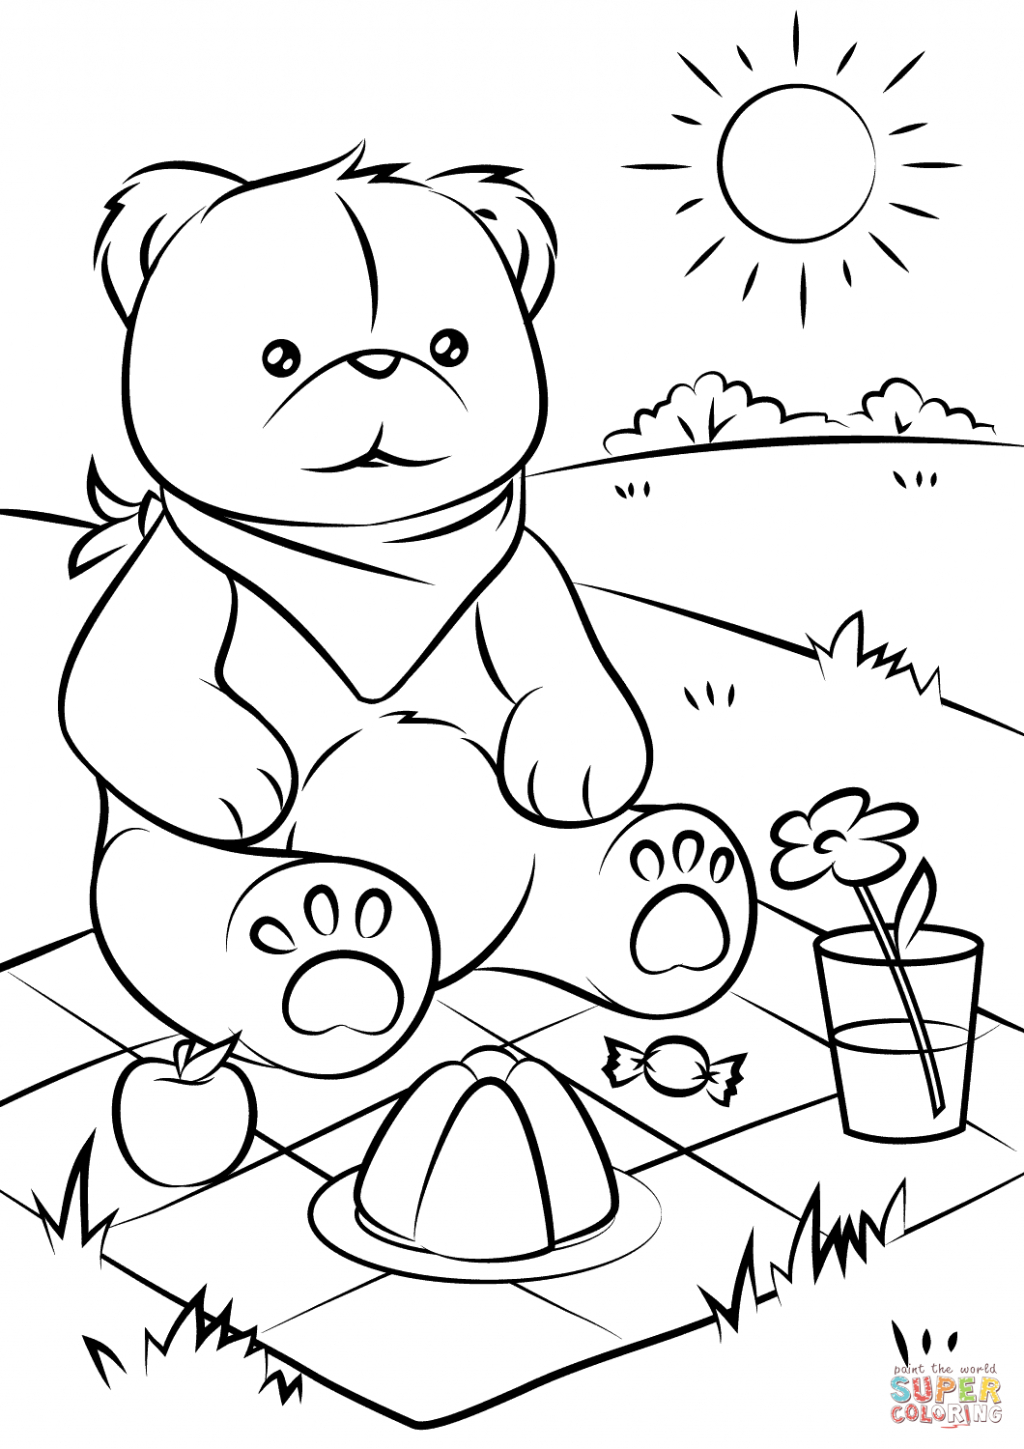 Bear Coloring Pages Coloring Pages Teddy Bear Coloring Sheet Adult - Teddy Bear Coloring Pages Free Printable